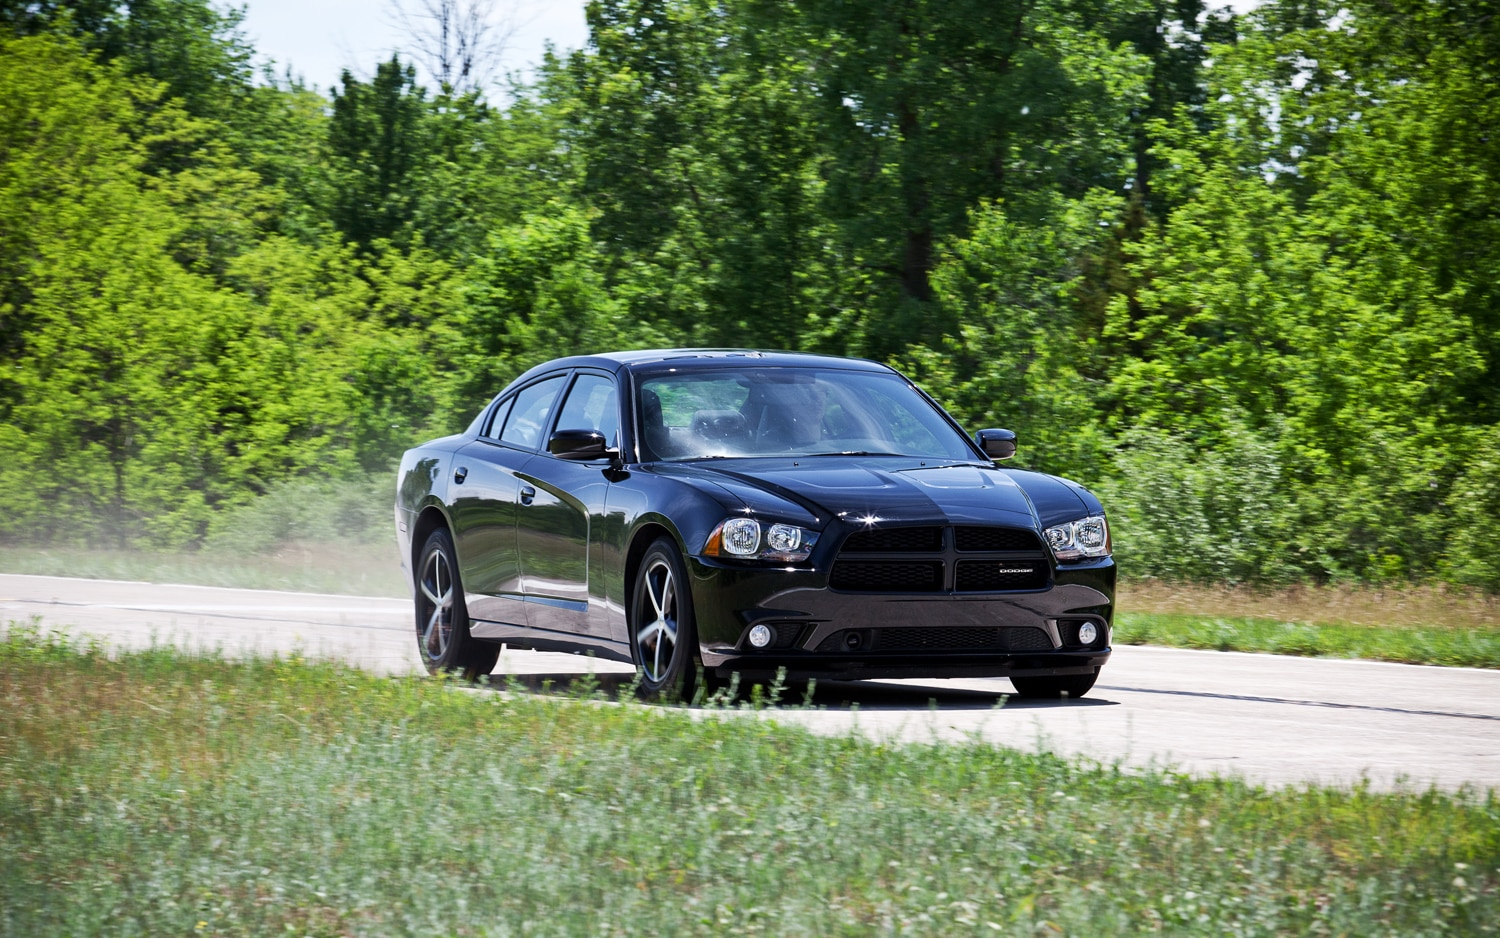 Dodge Charger Summer1